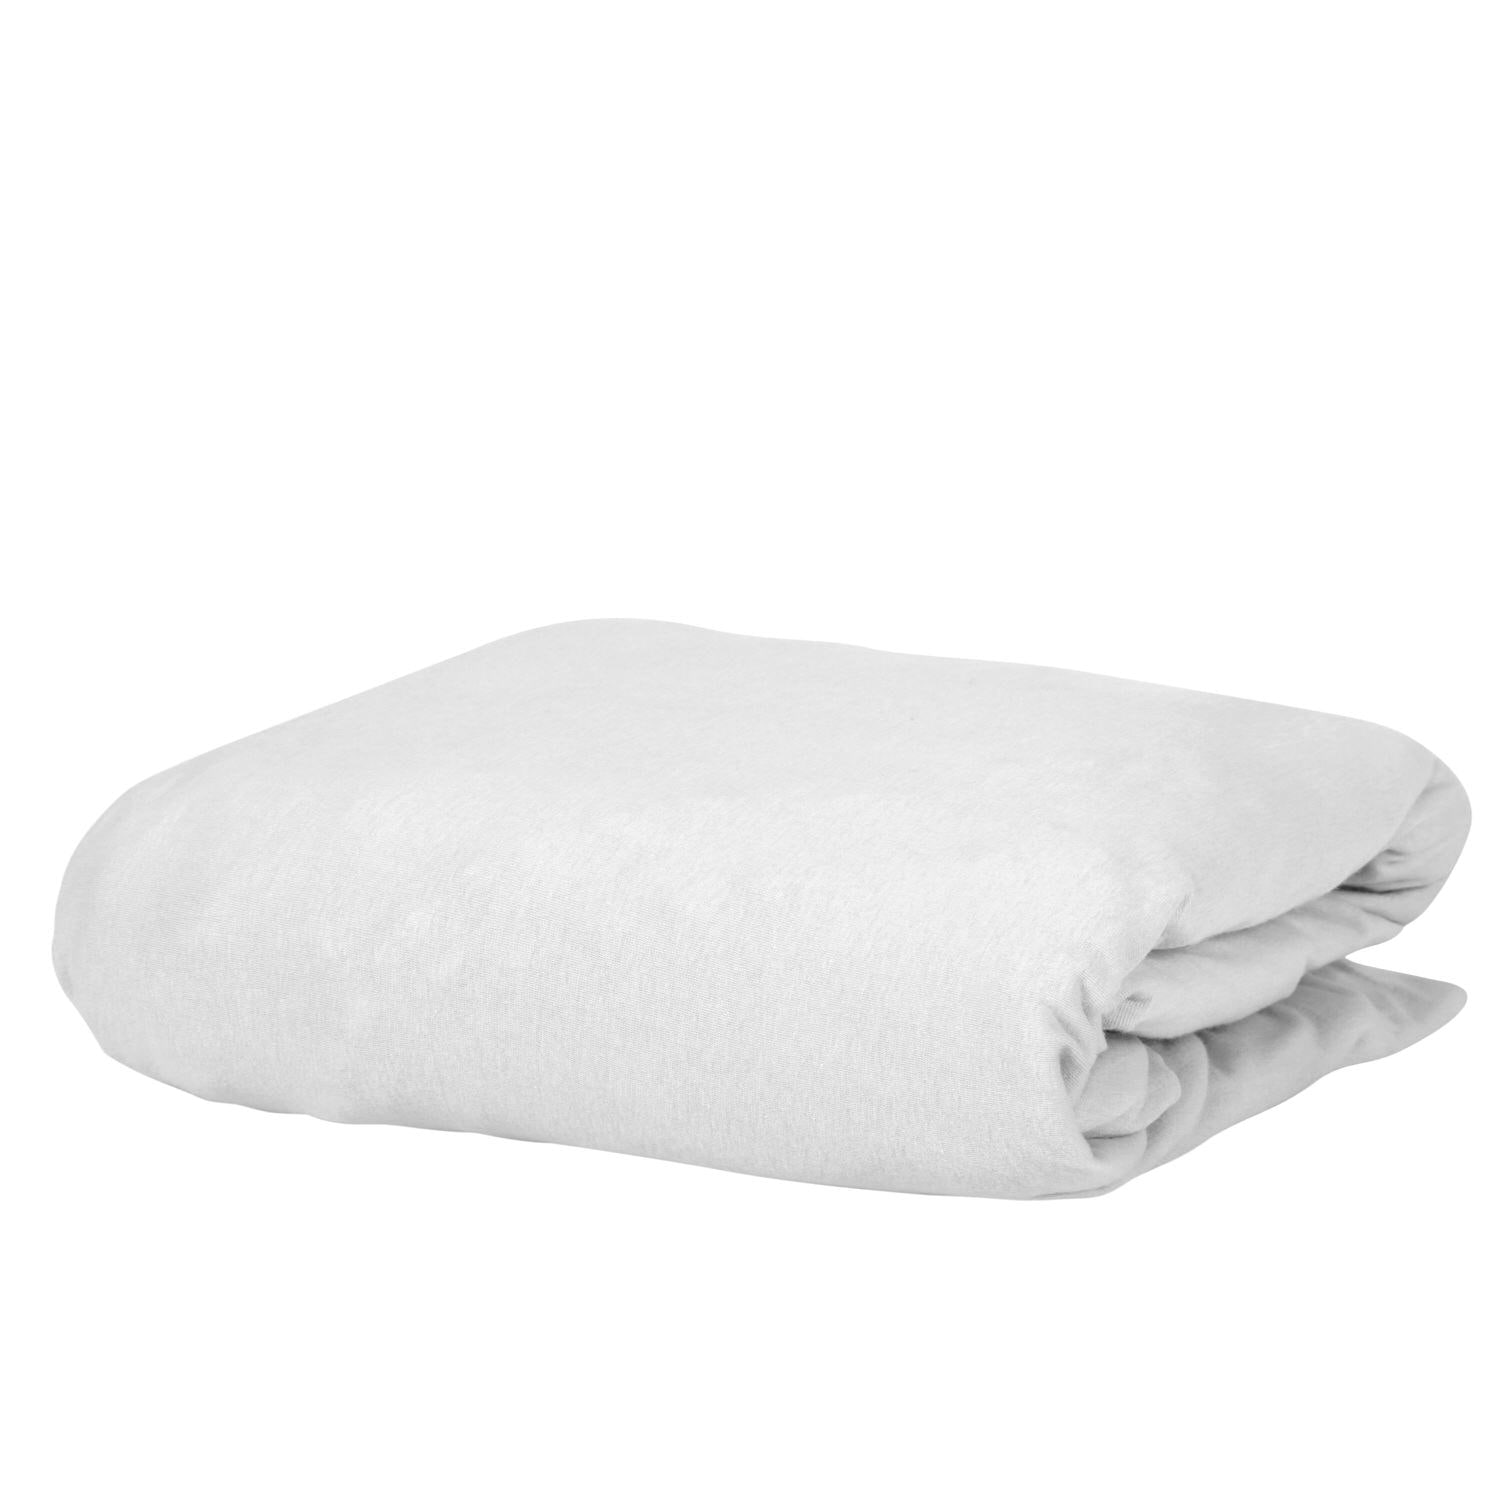 100% Premium Combed Cotton Jersey White Fitted Sheet with Aloe Vera Treatment